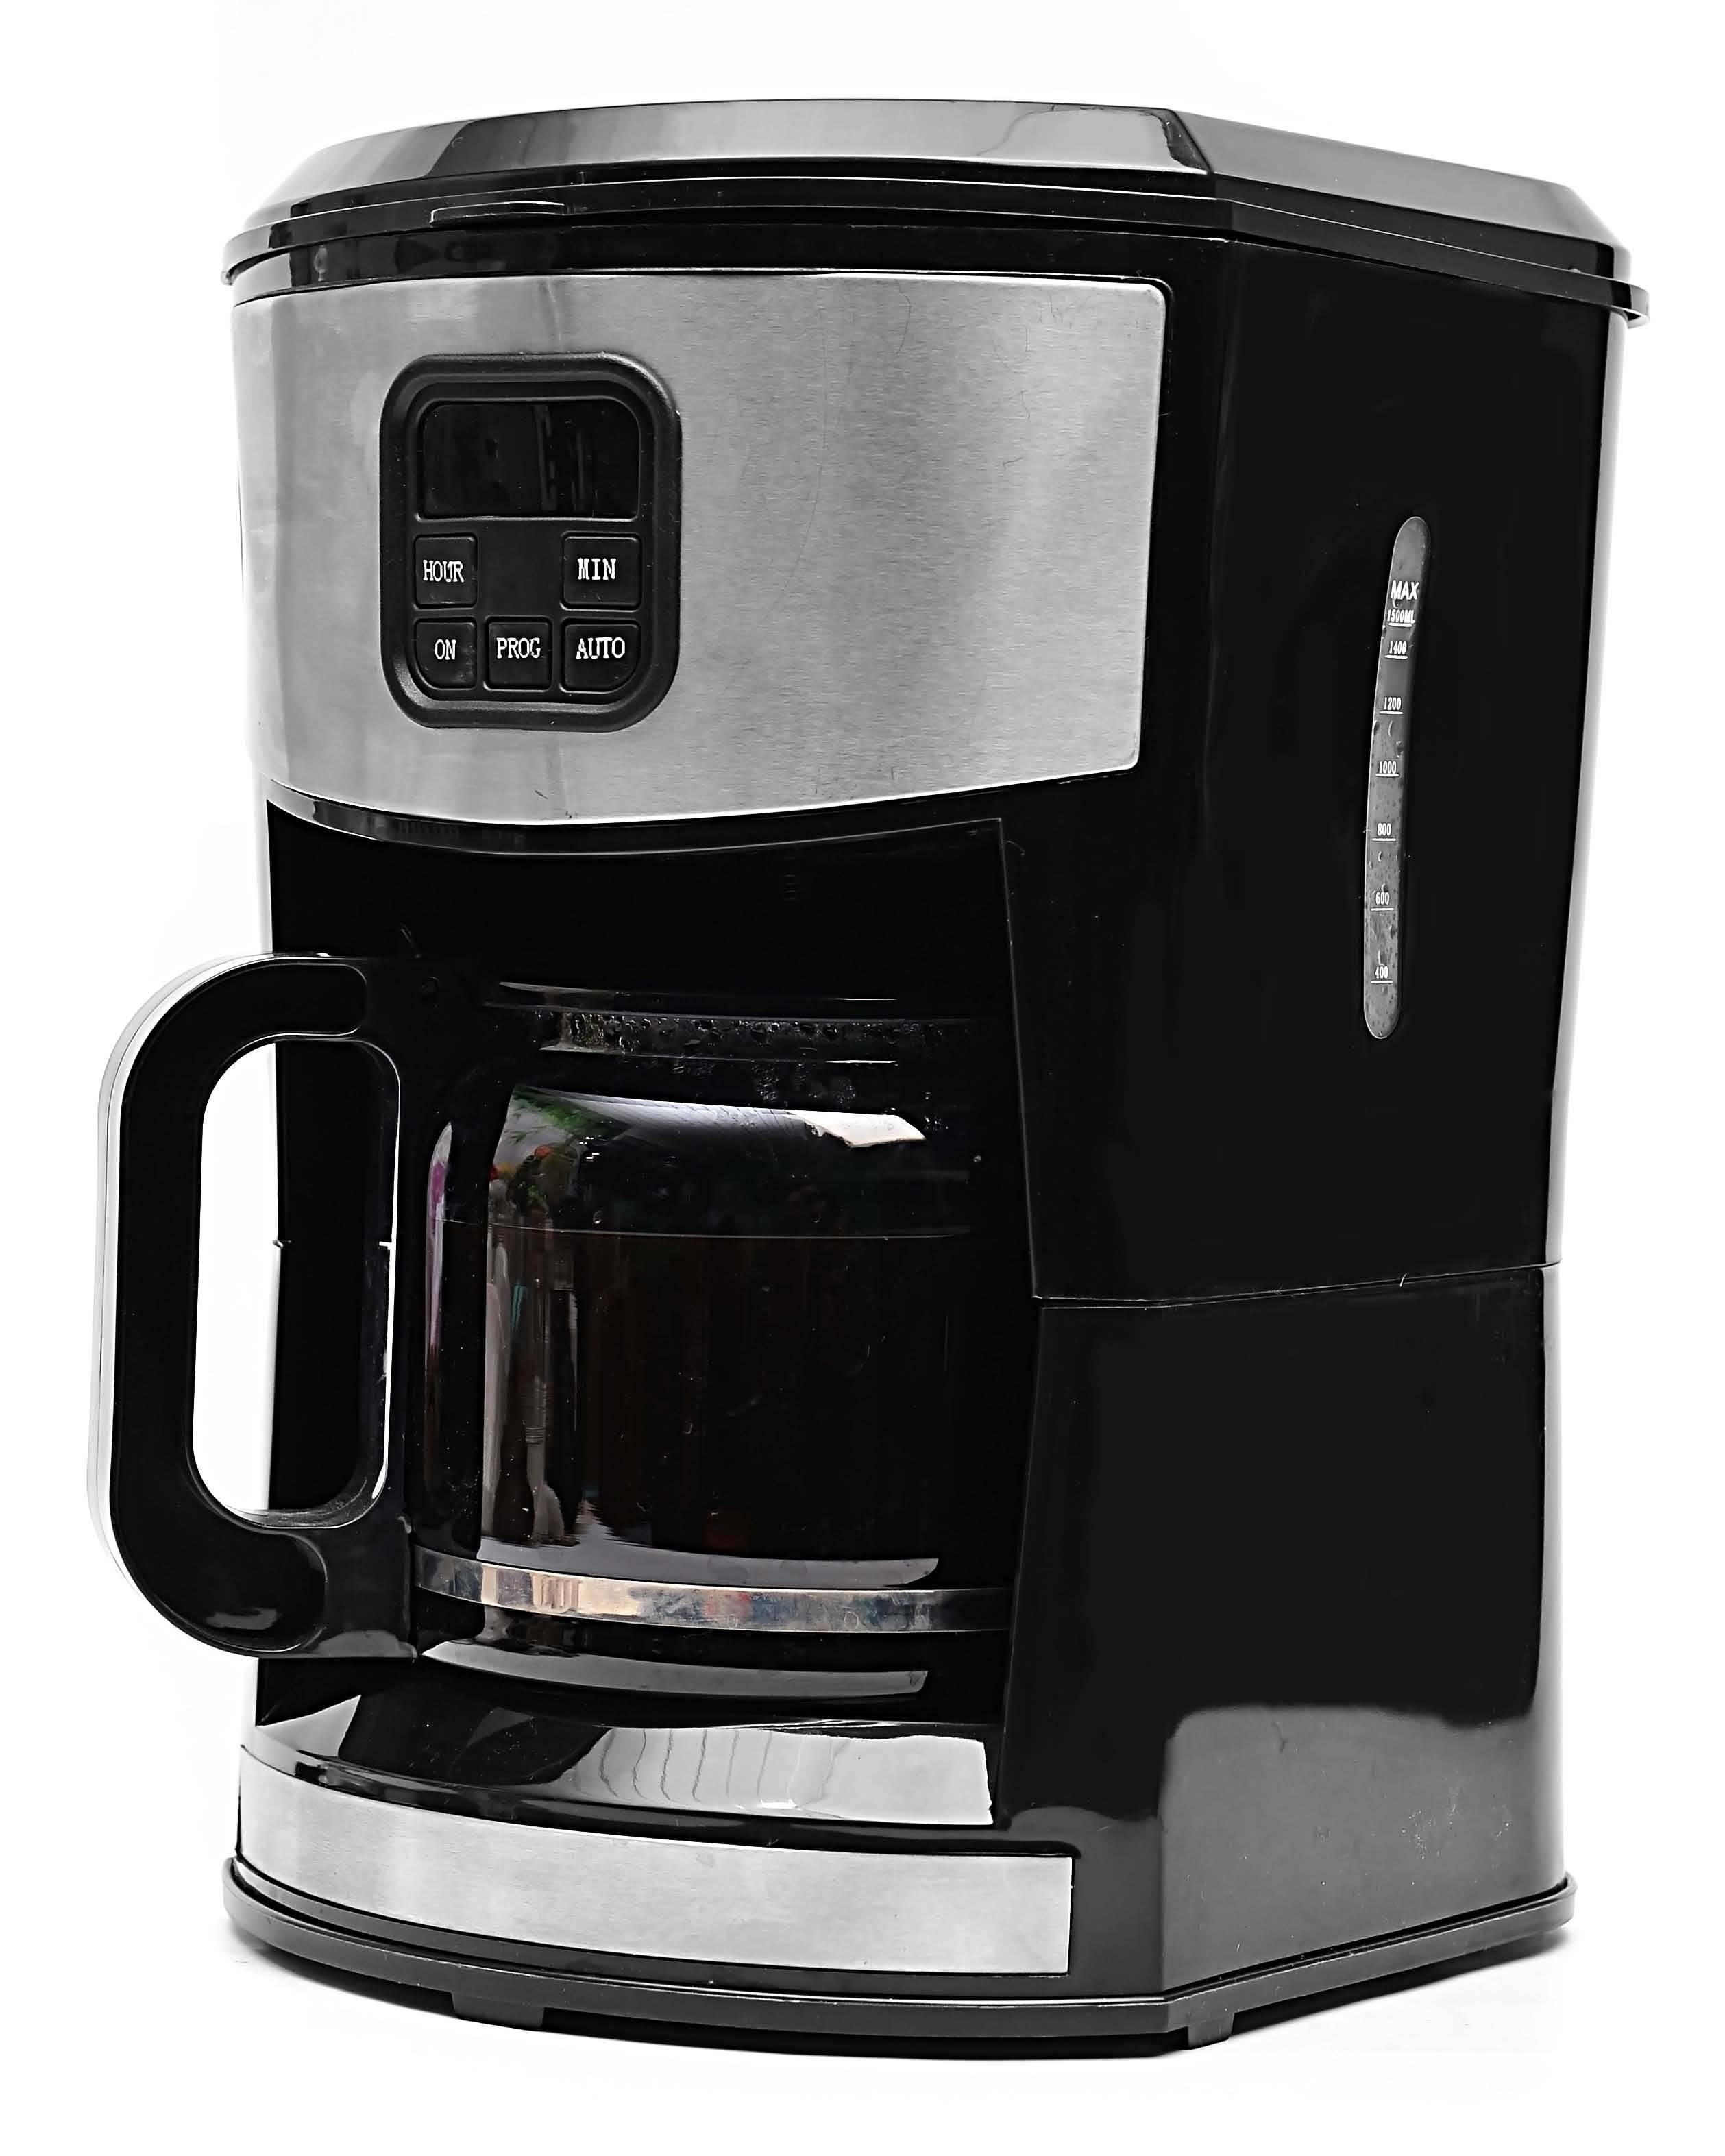 GS/CE/RoHS/LFGB/CB-approved 1000W 10-/12-cup Programmable Coffee Maker KM-613